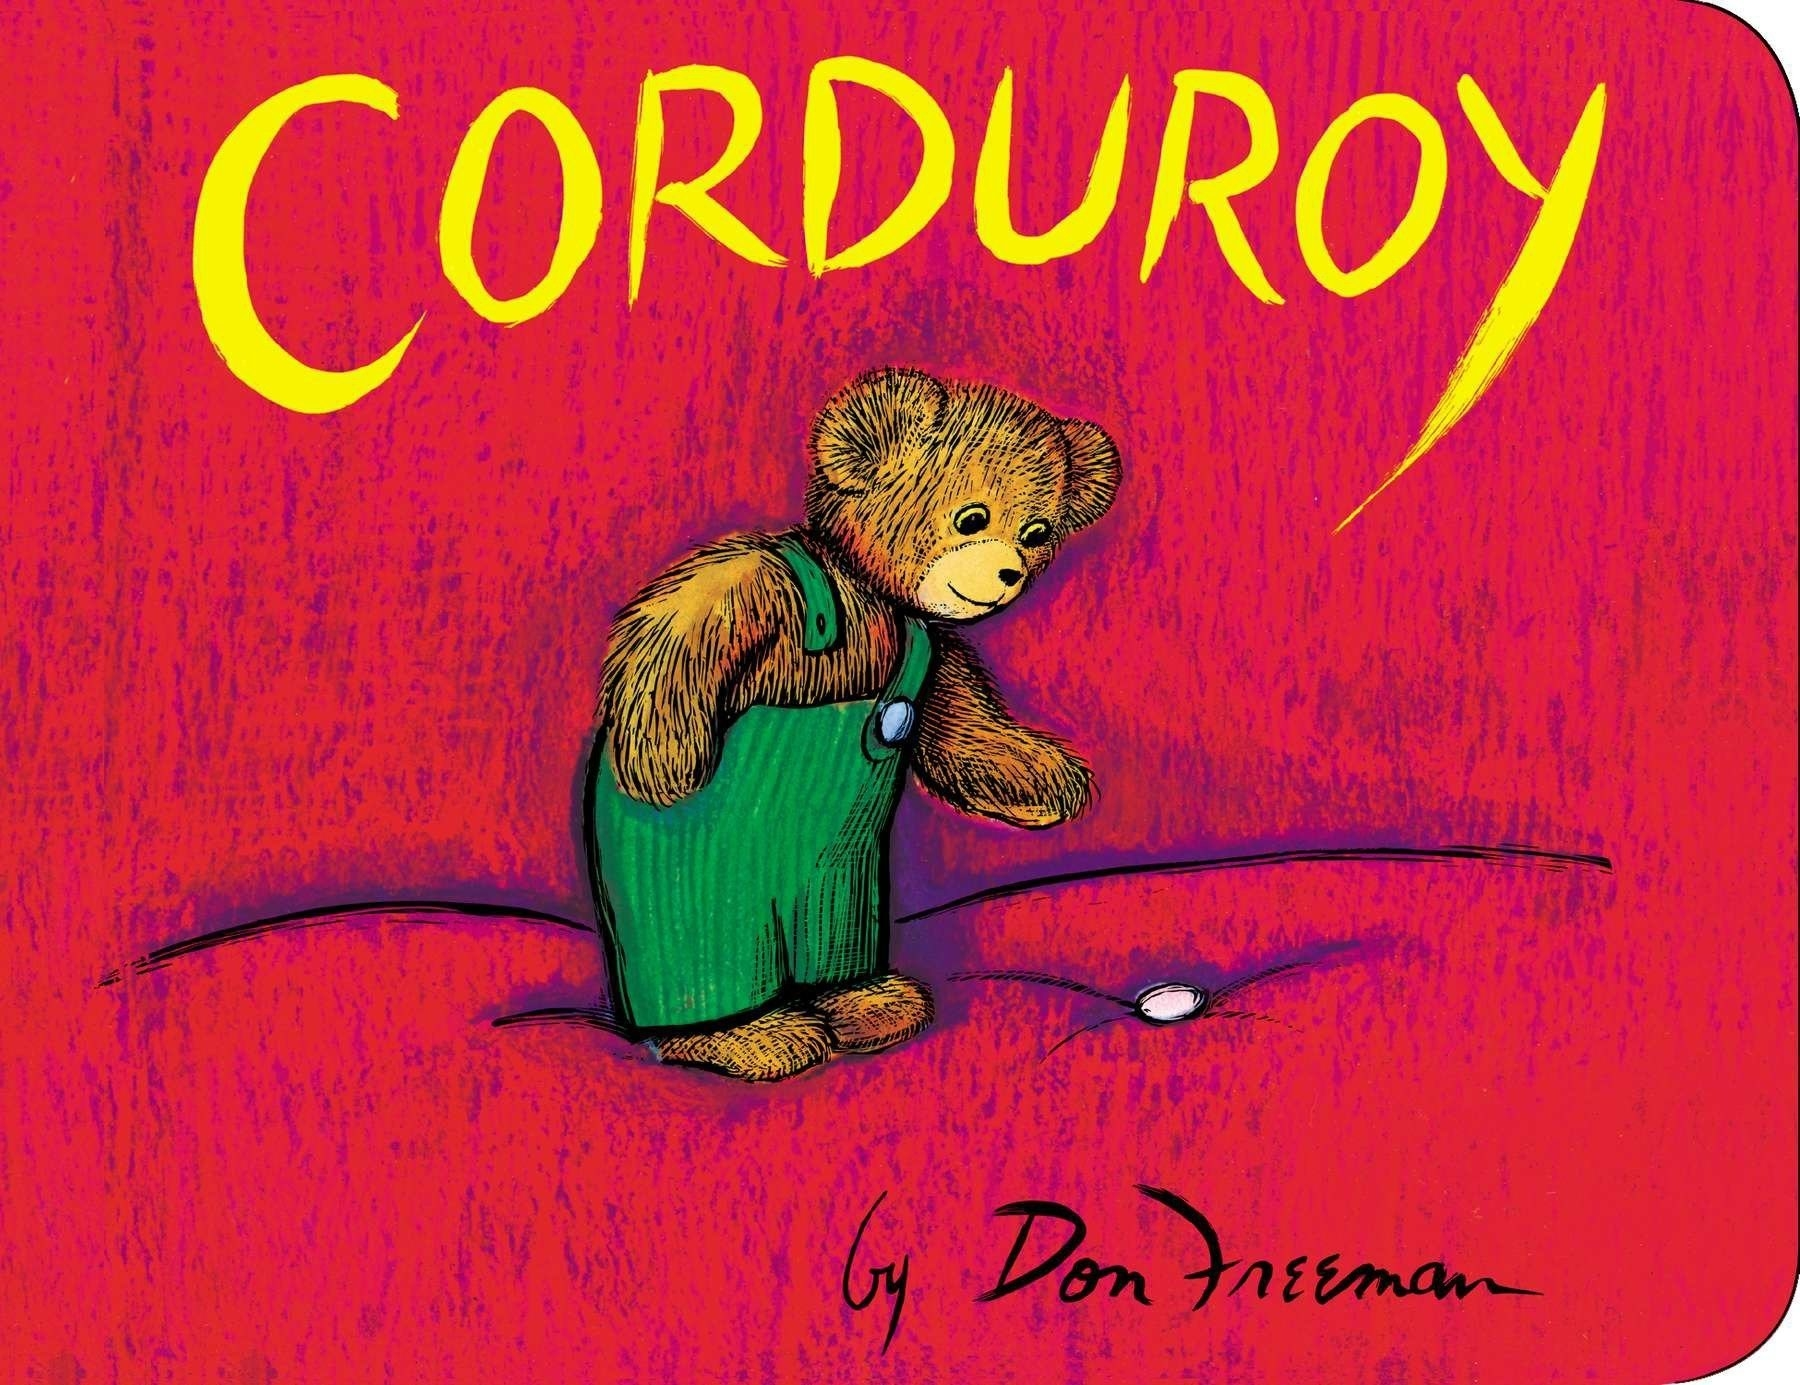 The cover of the classic children's book, Corduroy